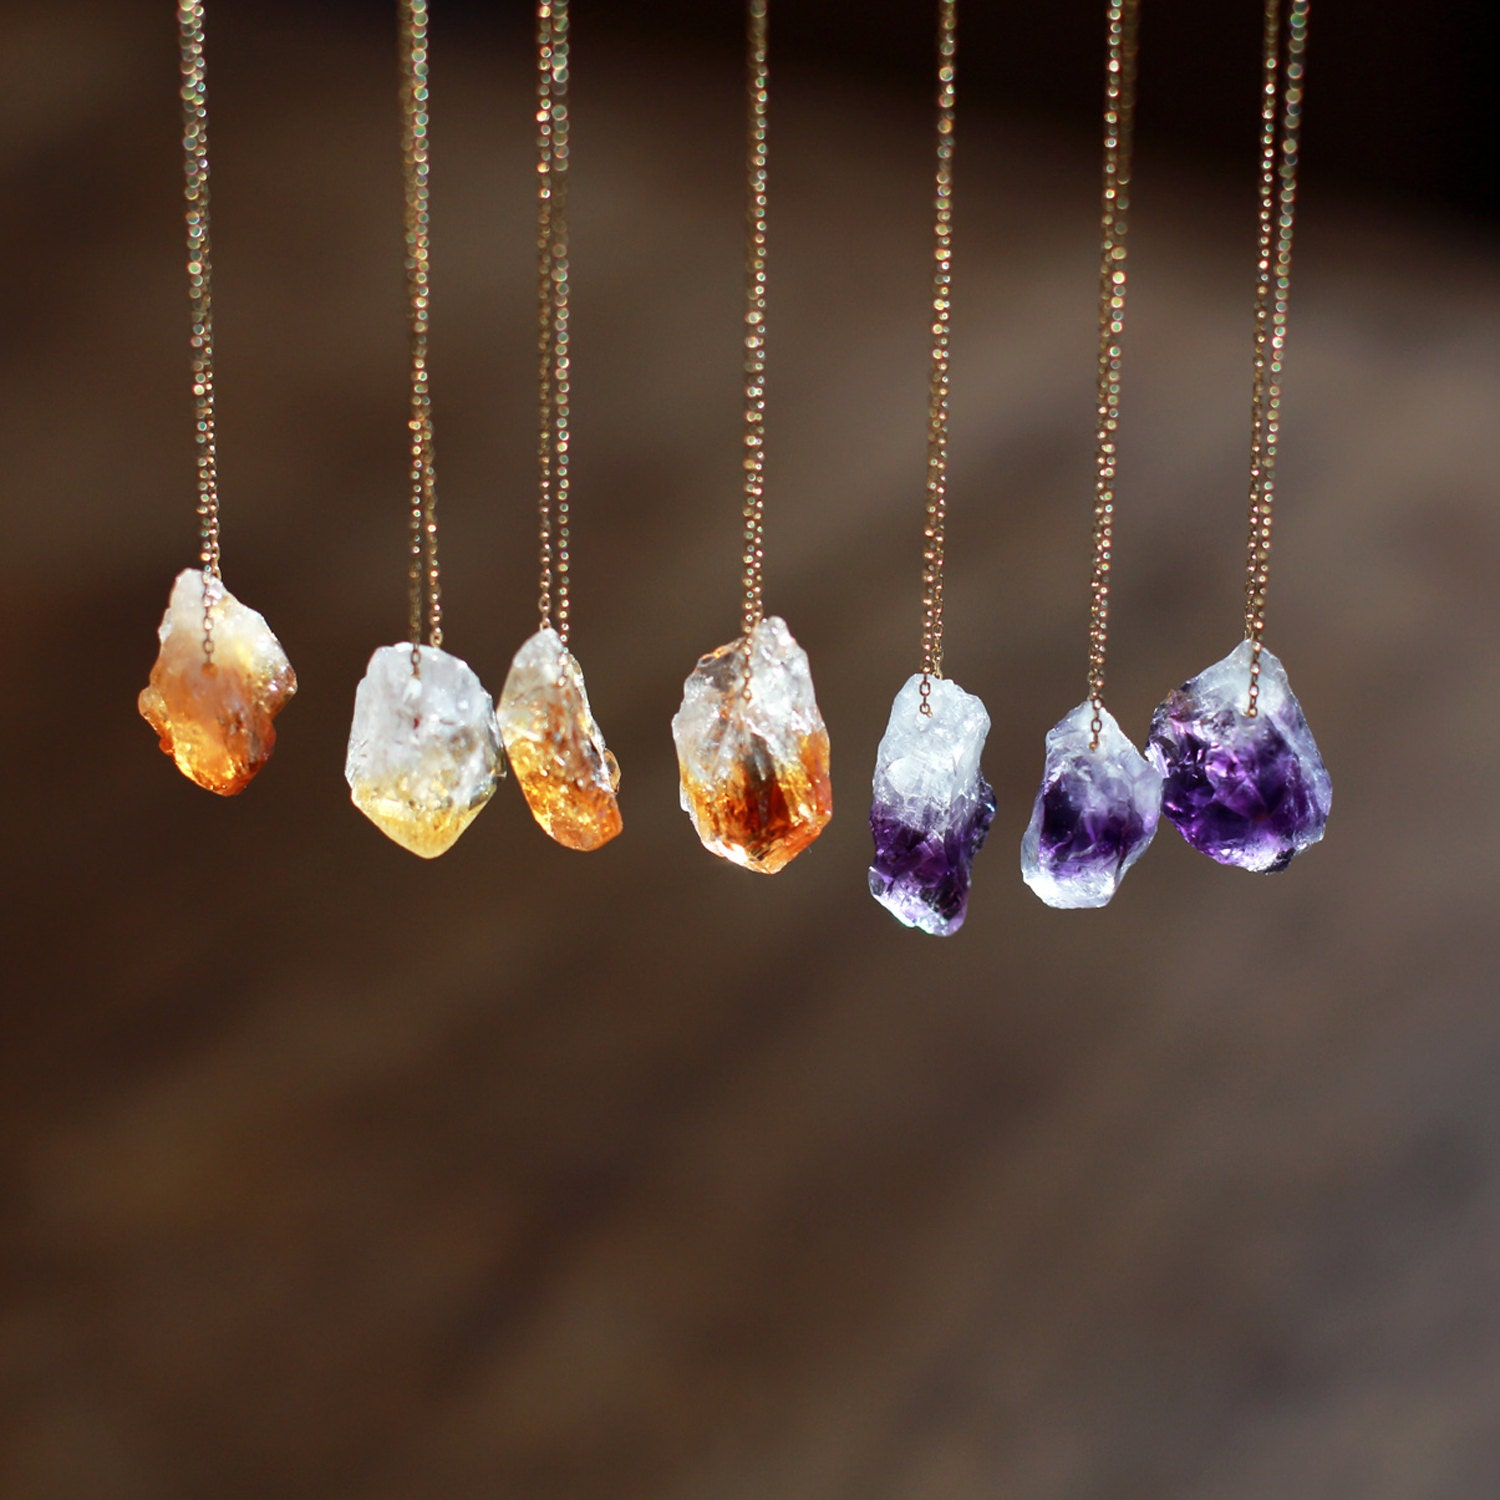 stone necklace long original com product crystal agate by green gaamaa raw notonthehighstreet